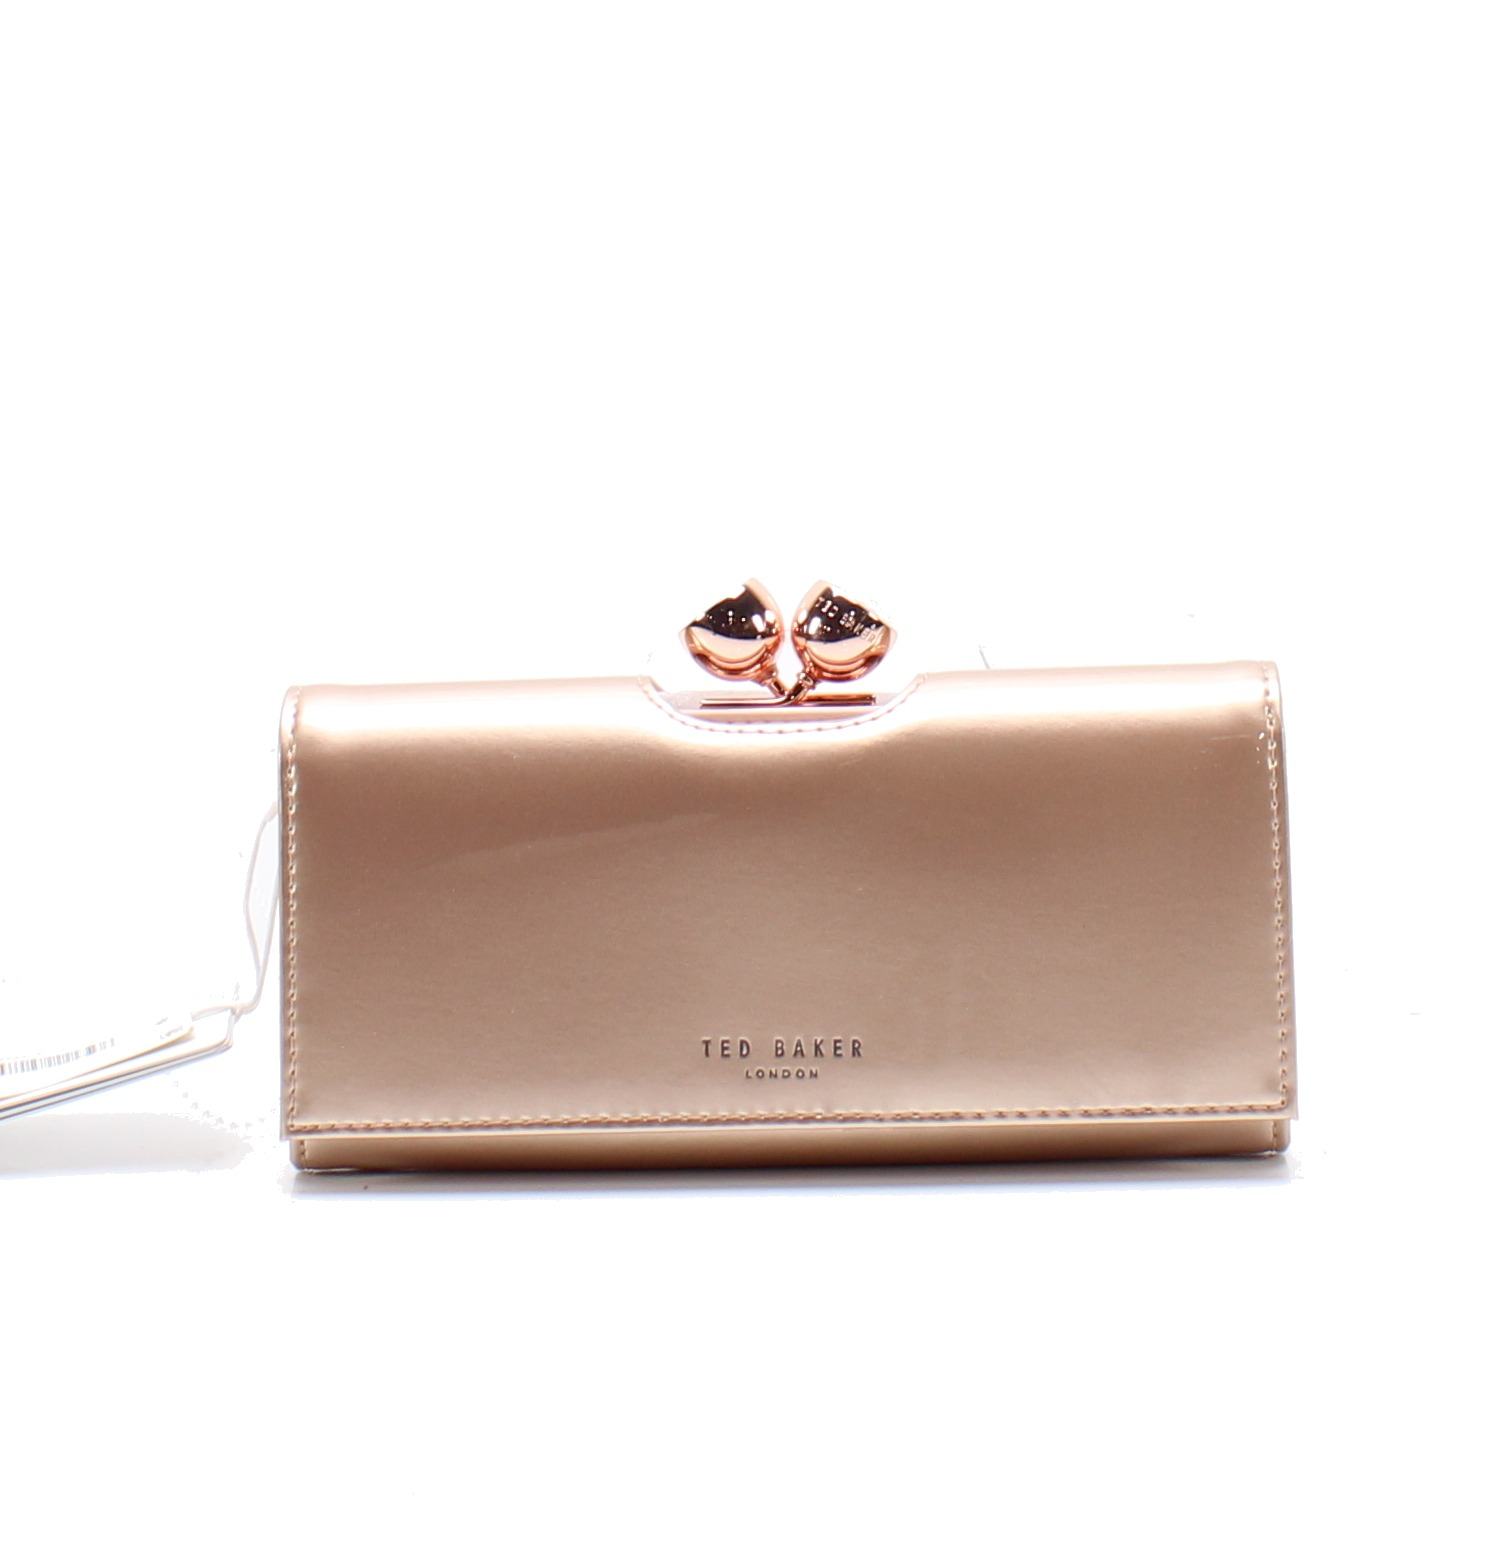 3aa8edc2d1d8 Ted Baker NEW Light Pink Bobble Closure Patent Leather Matinee Wallet  149-   040